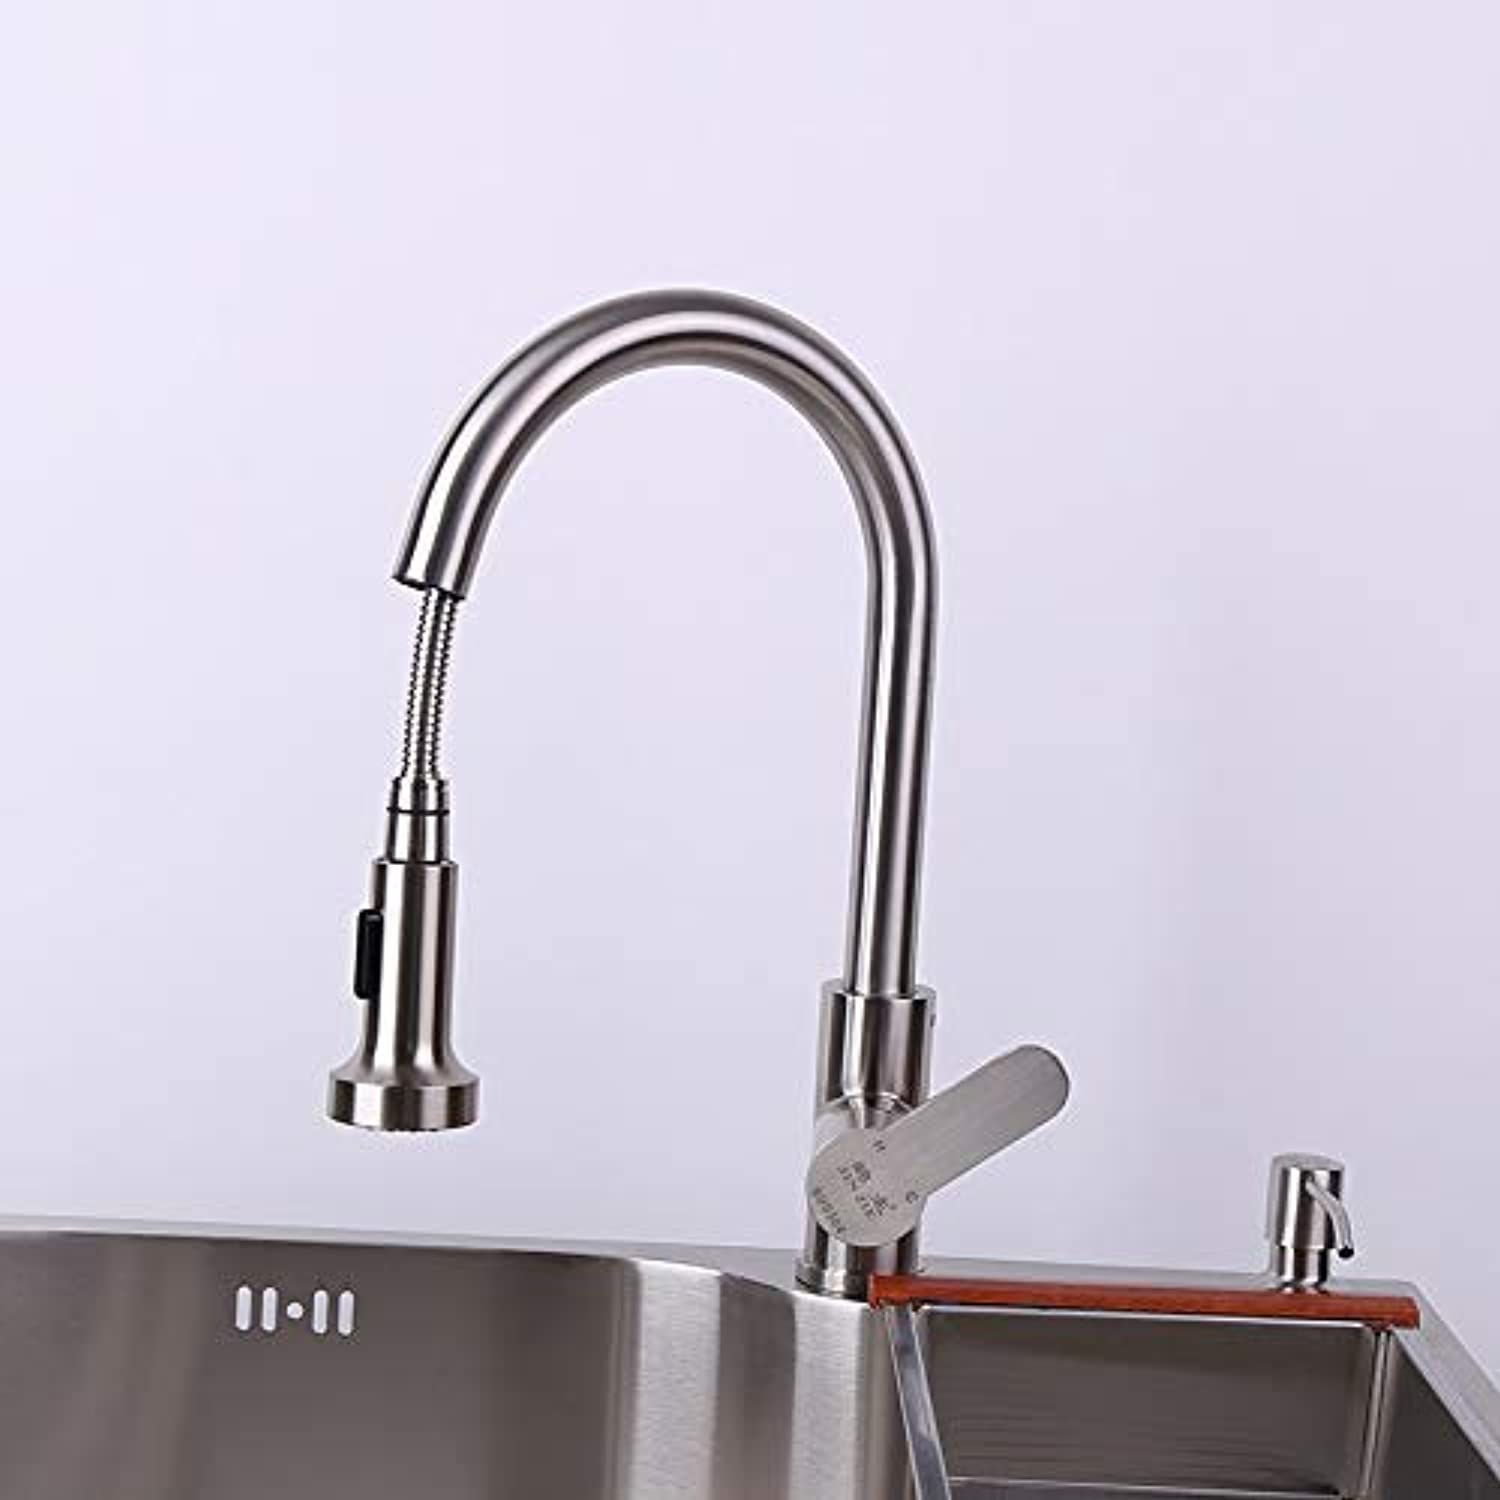 Oudan Stainless Steel Pull-Pull redary Faucet Kitchen Faucet Mixer (color   -, Size   -)